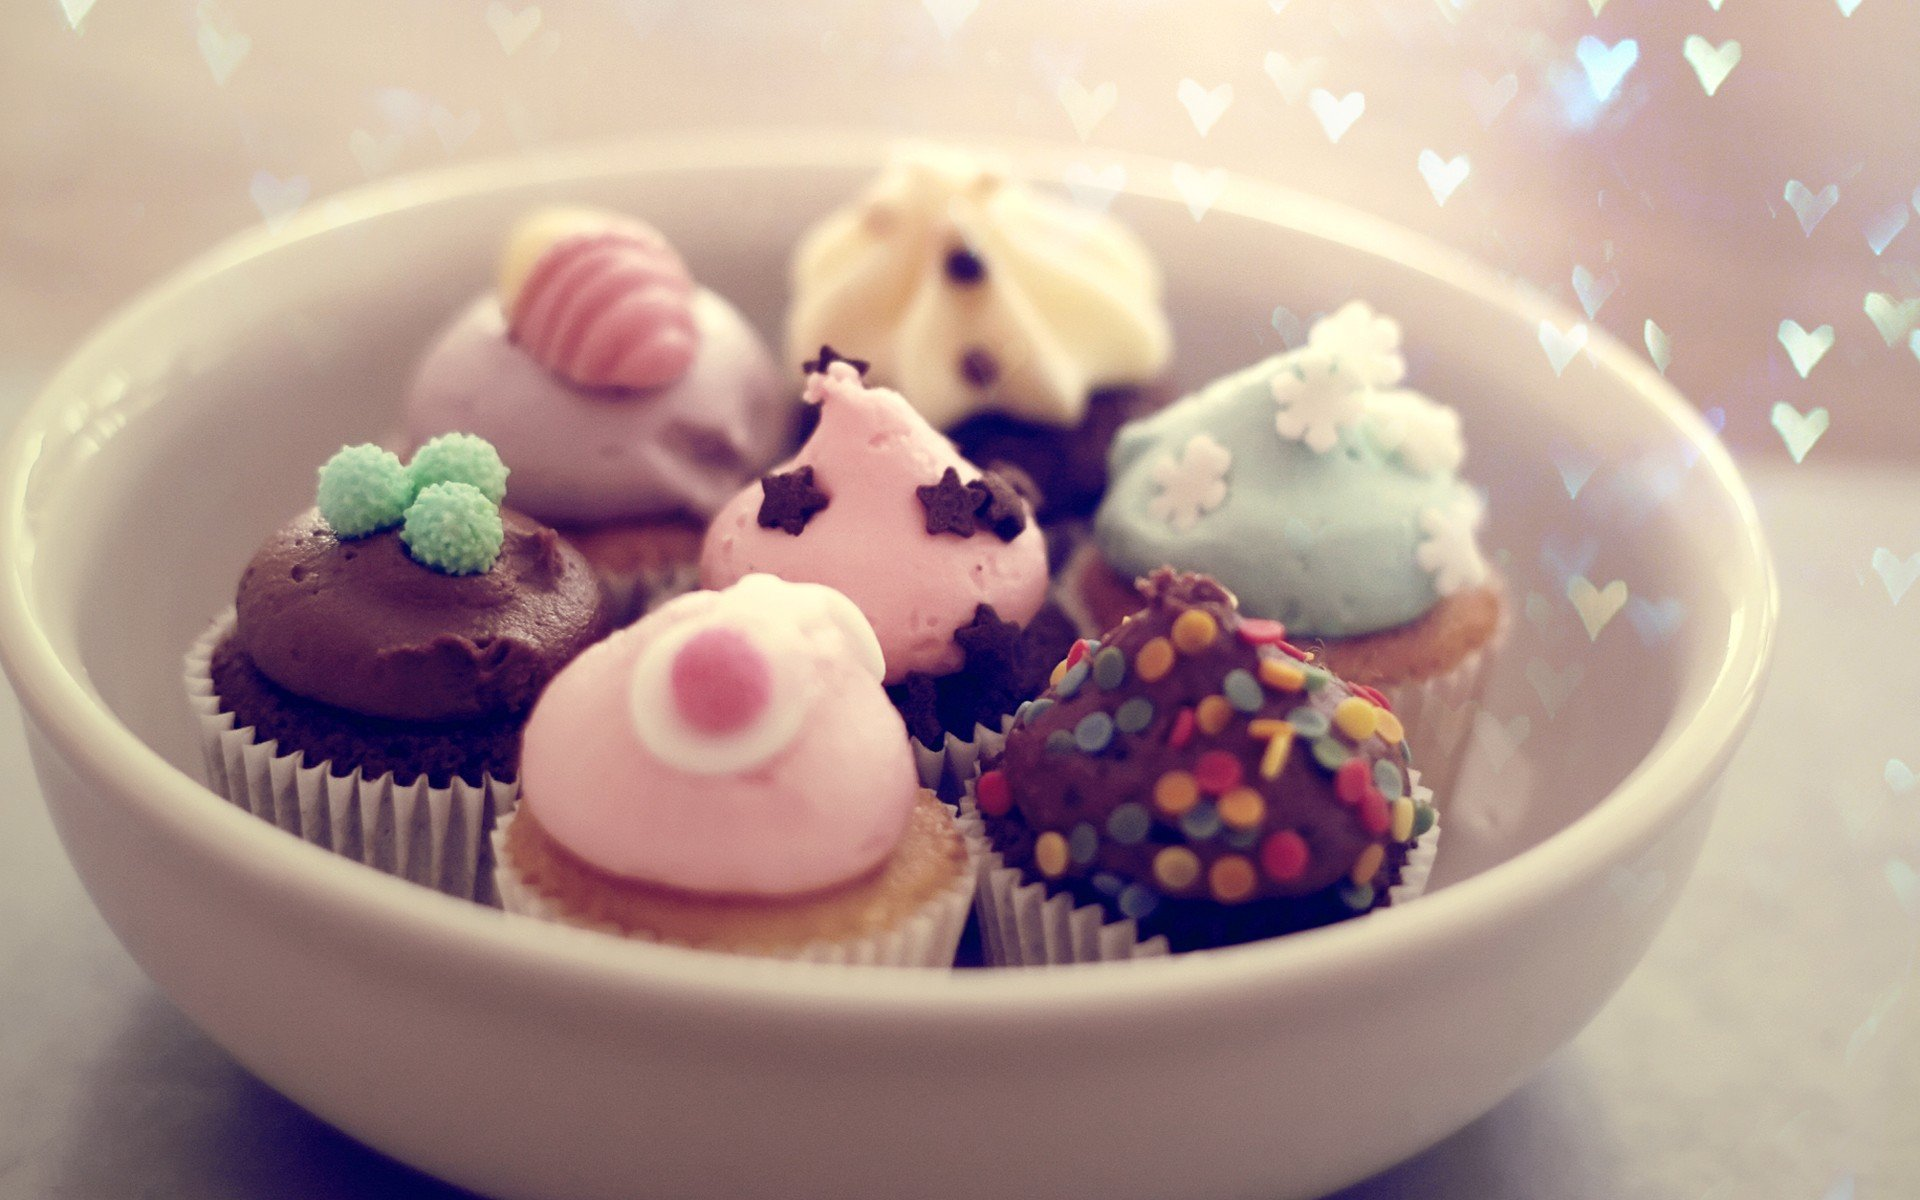 Free download Cupcake wallpaper ID:185863 hd 1920x1200 for computer